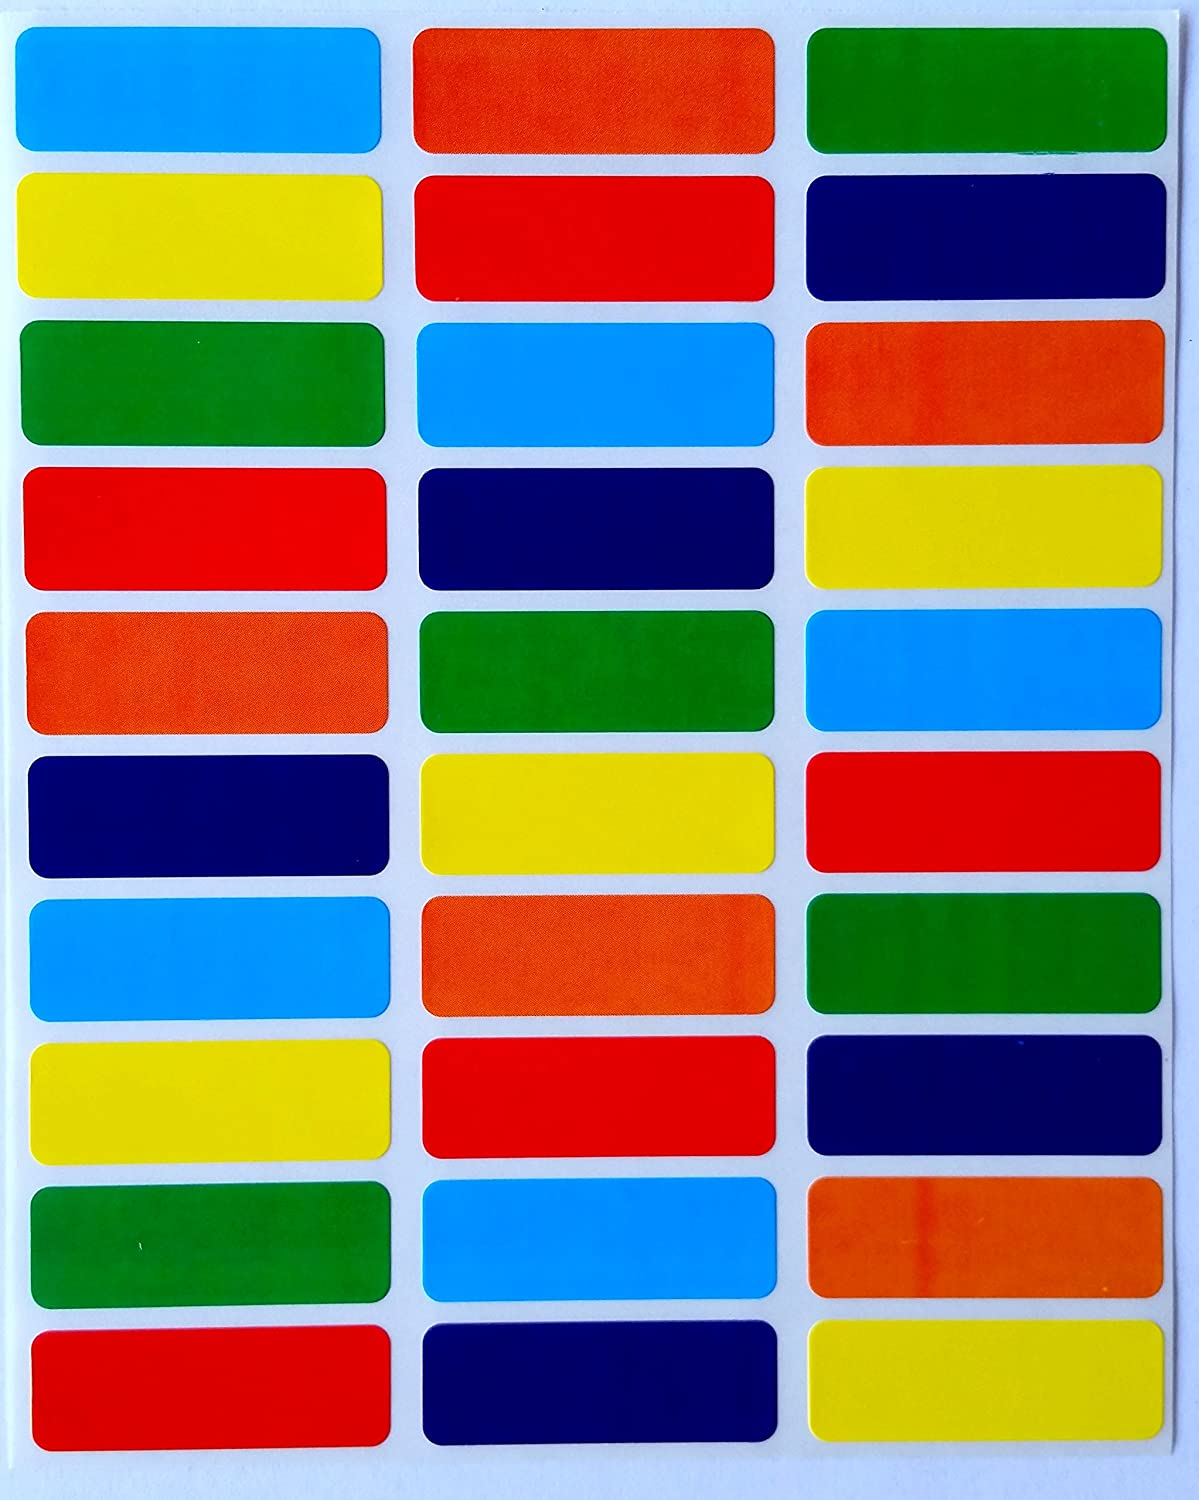 amazon com colored coding labels rectangular 1 375 inch by 0 5